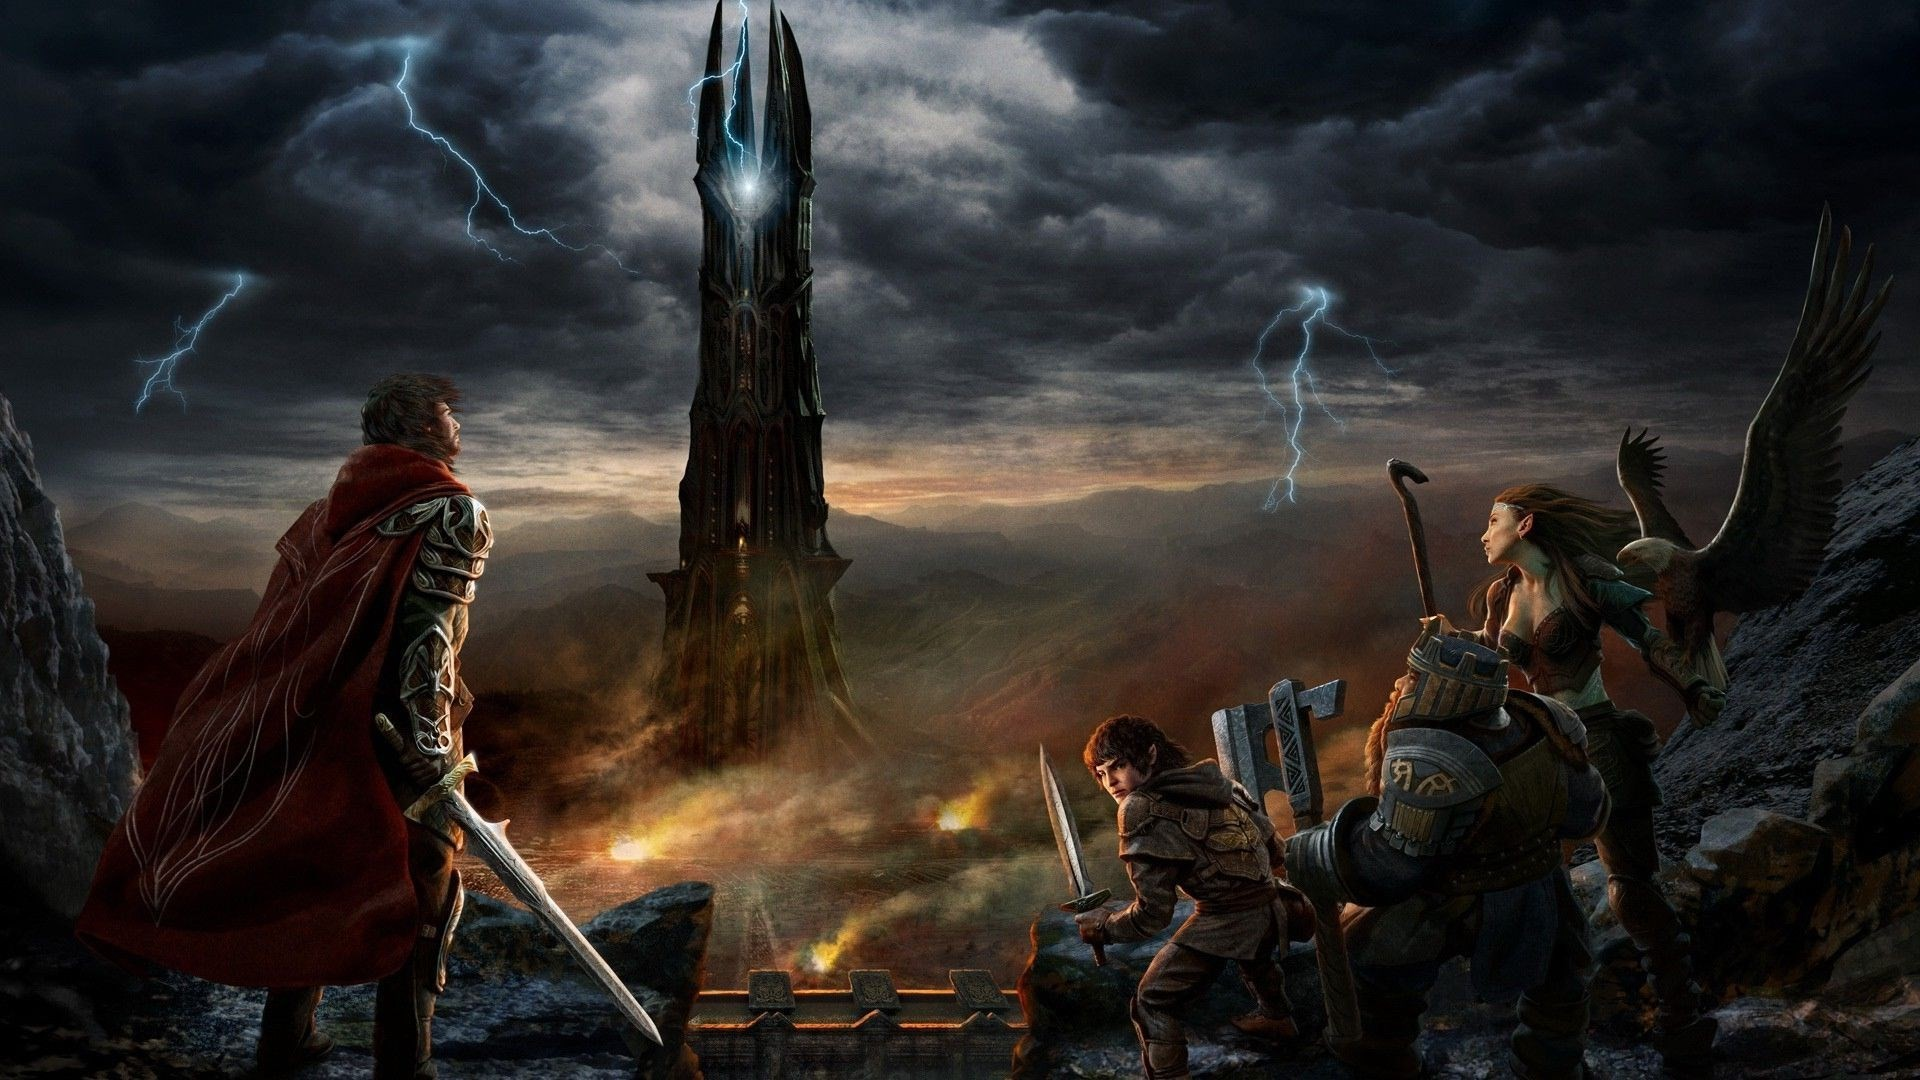 lord of the rings hd picture